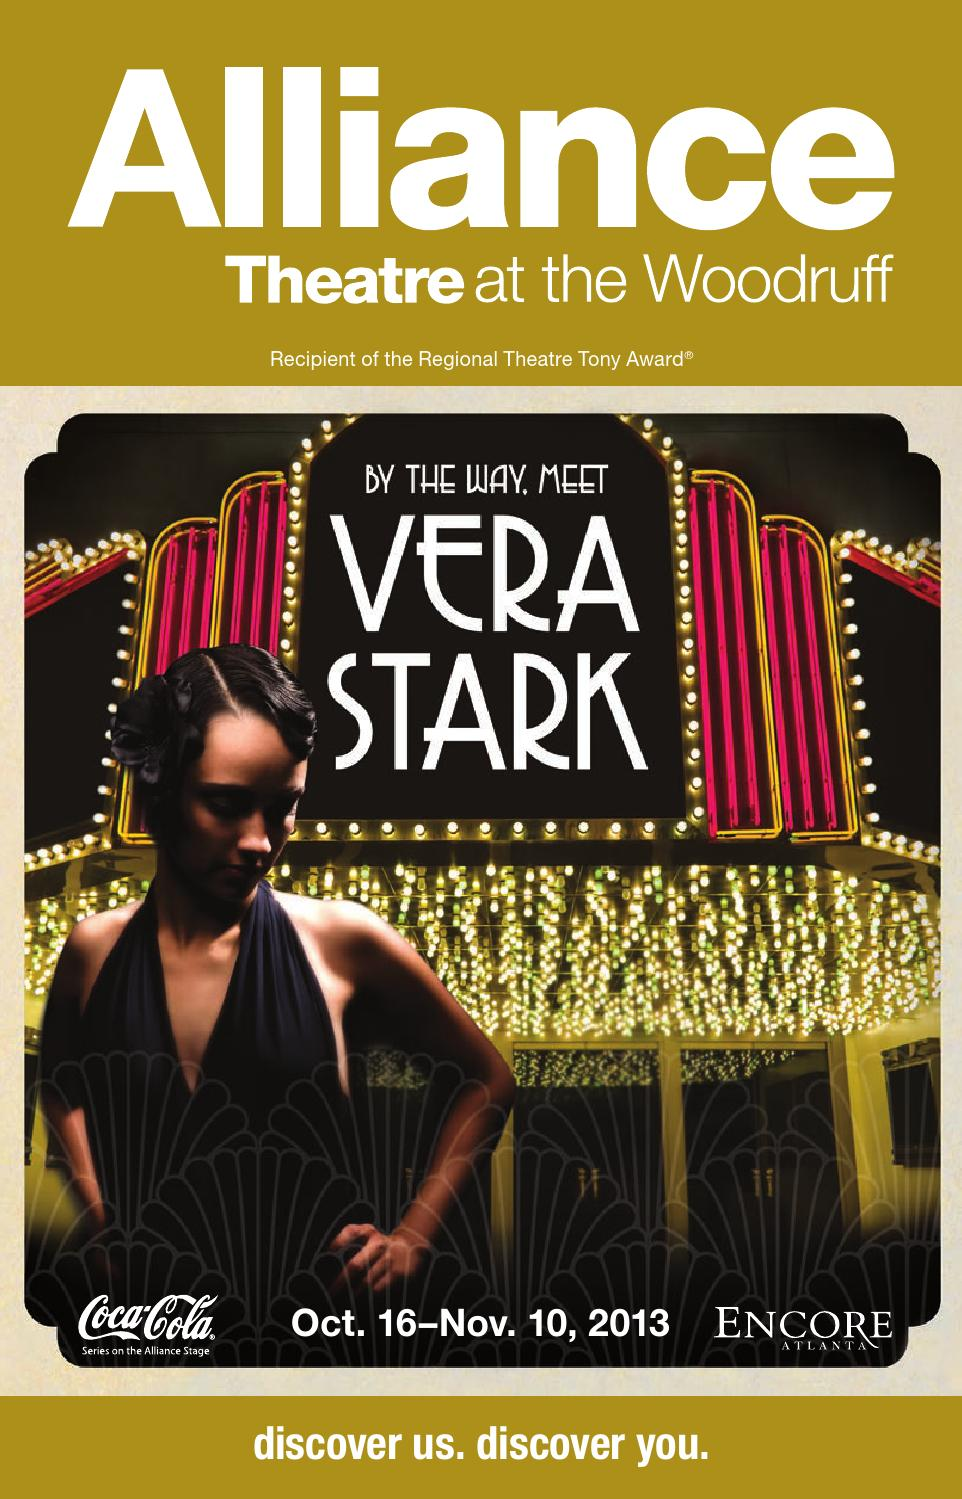 Alliance Theatre: By the Way, Meet Vera Stark by Encore